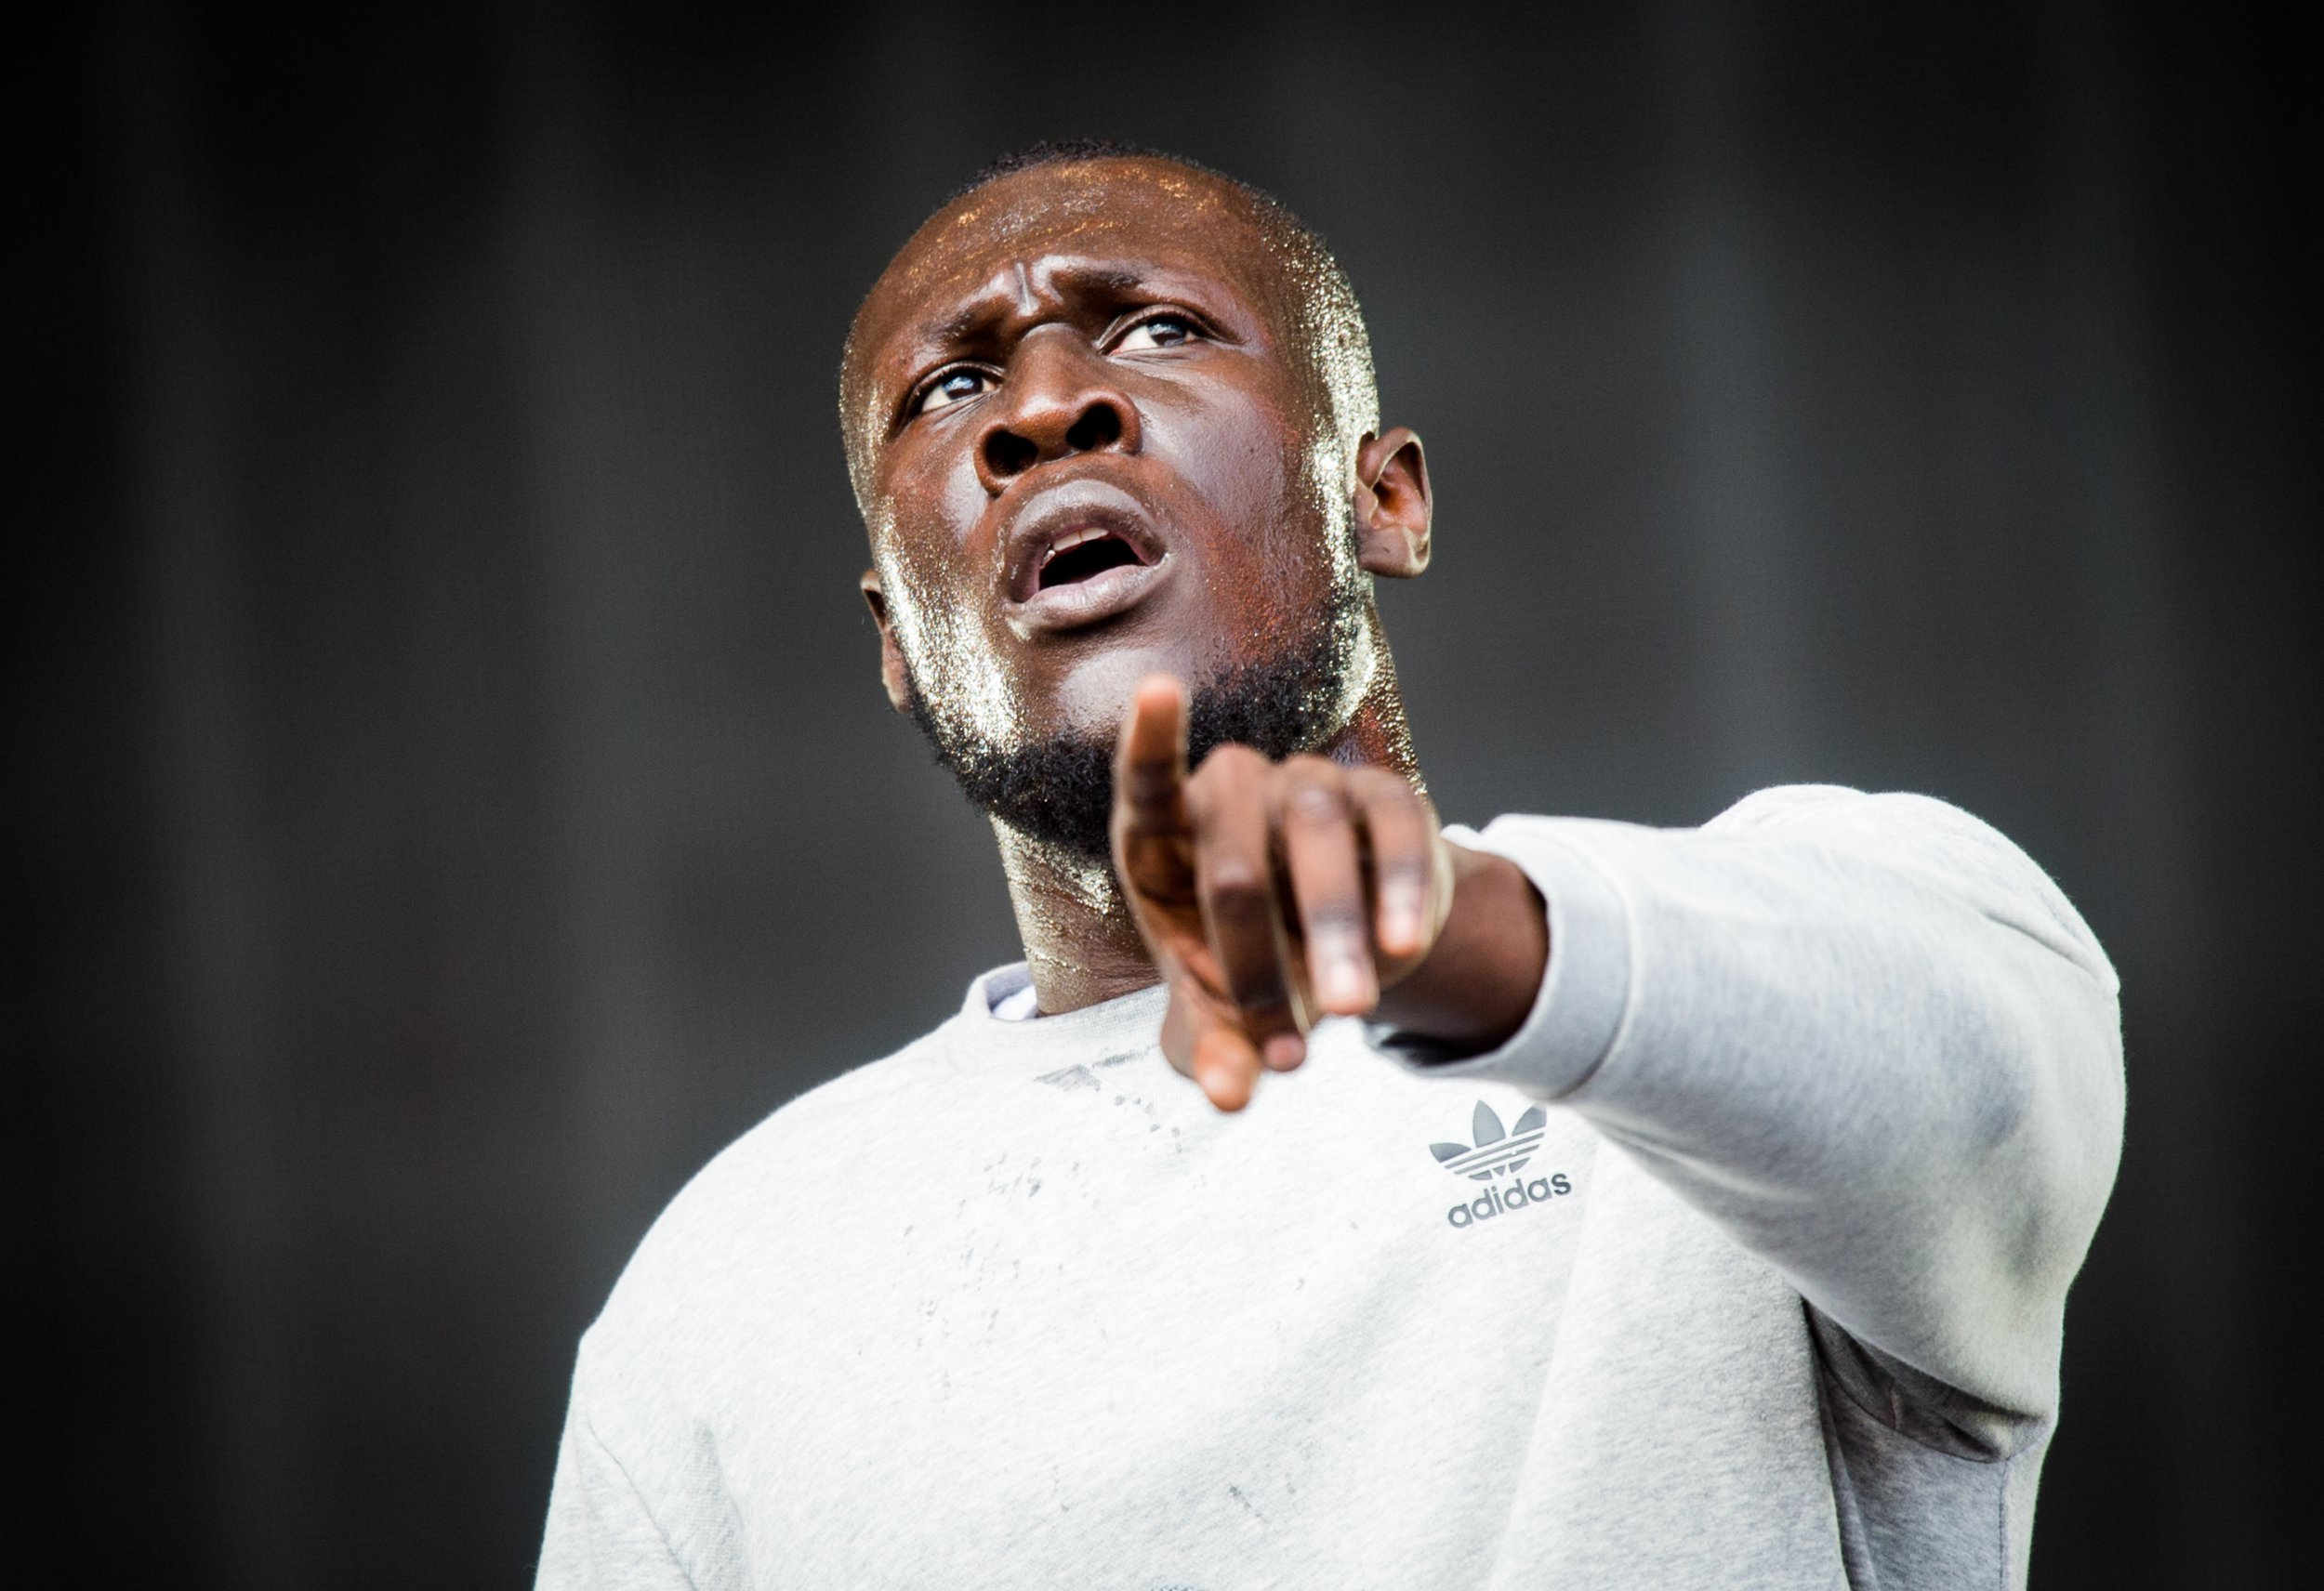 Stormzy is helping black students, now Cambridge University needs to do the same